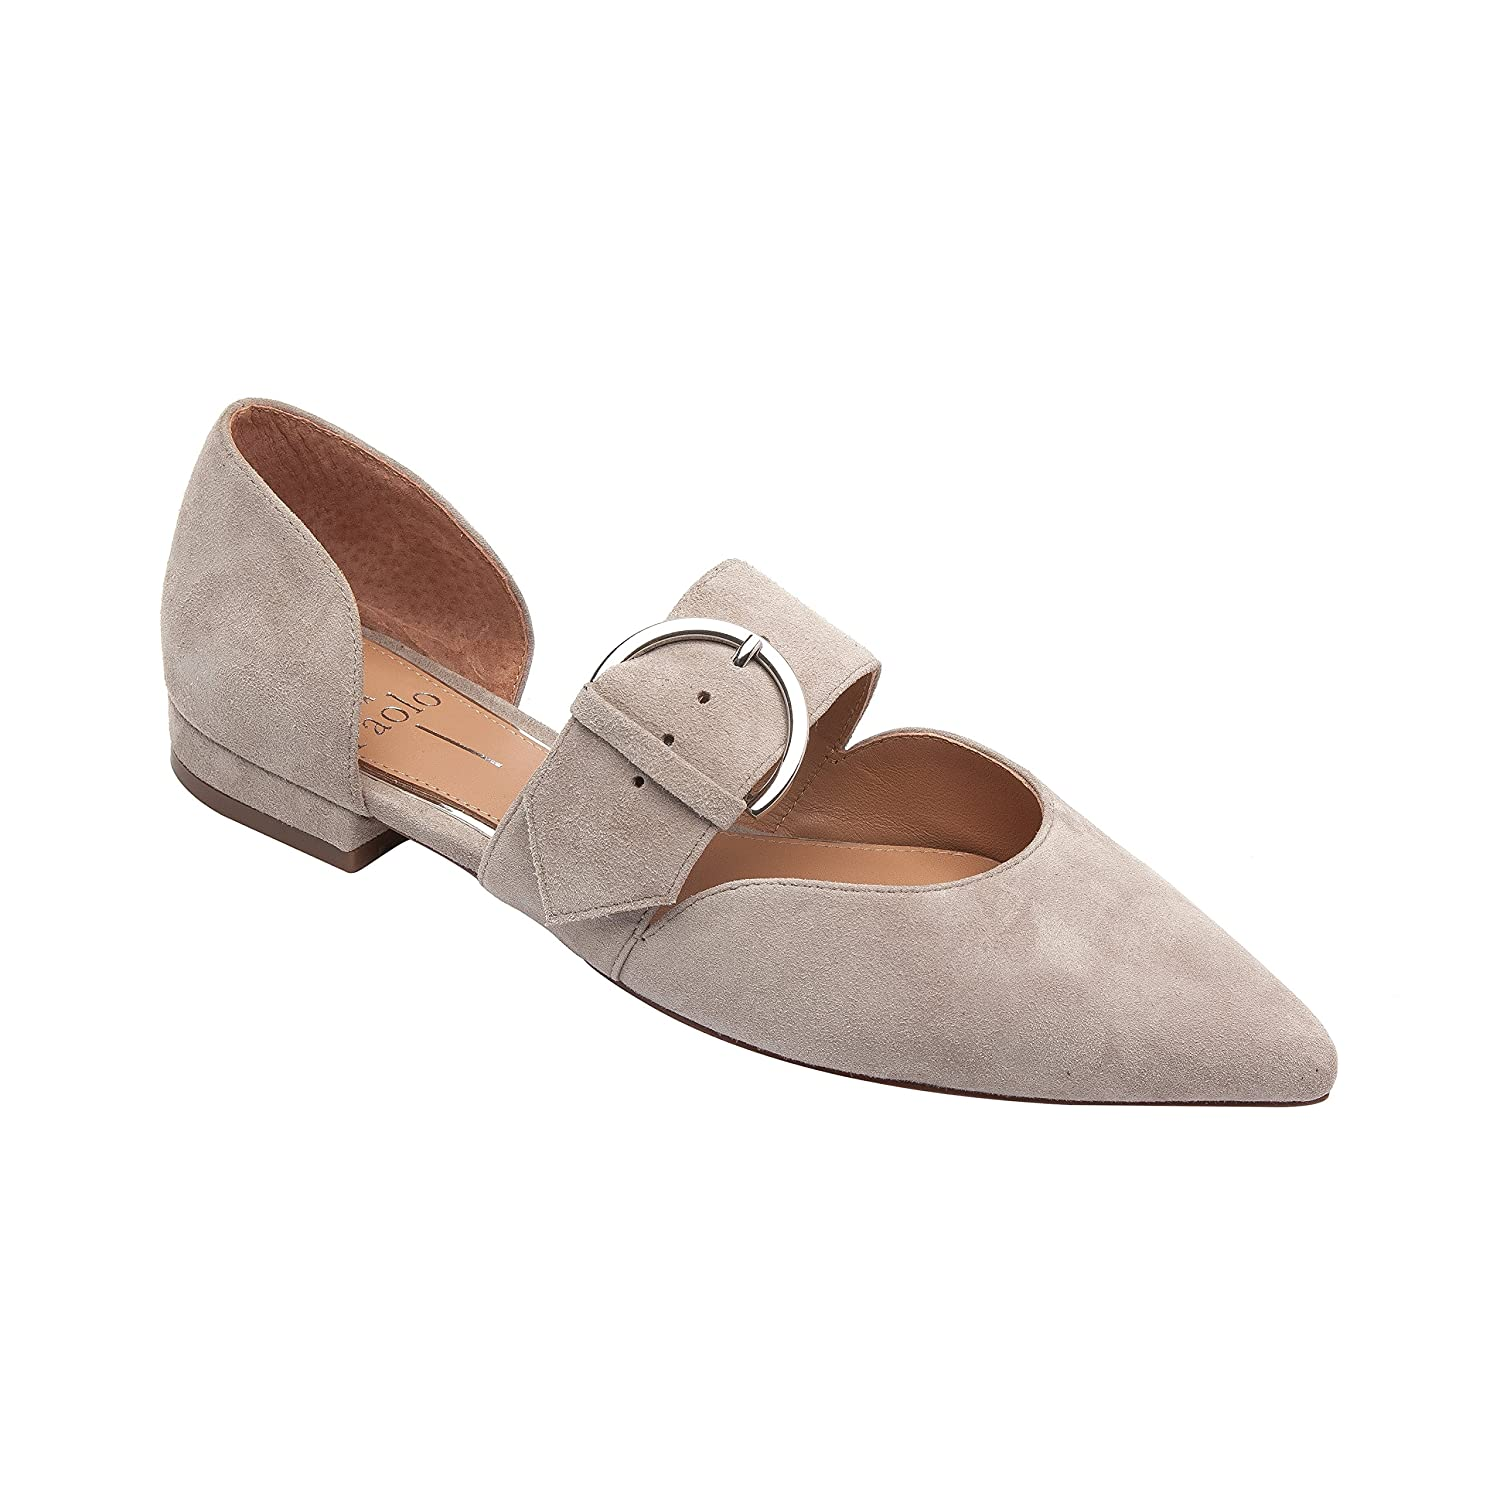 Dean | Women's Two Piece Pointy Toe Comfortable Leather or Suede Ballet Flat B0795718P9 5.5 M US|Dove Suede